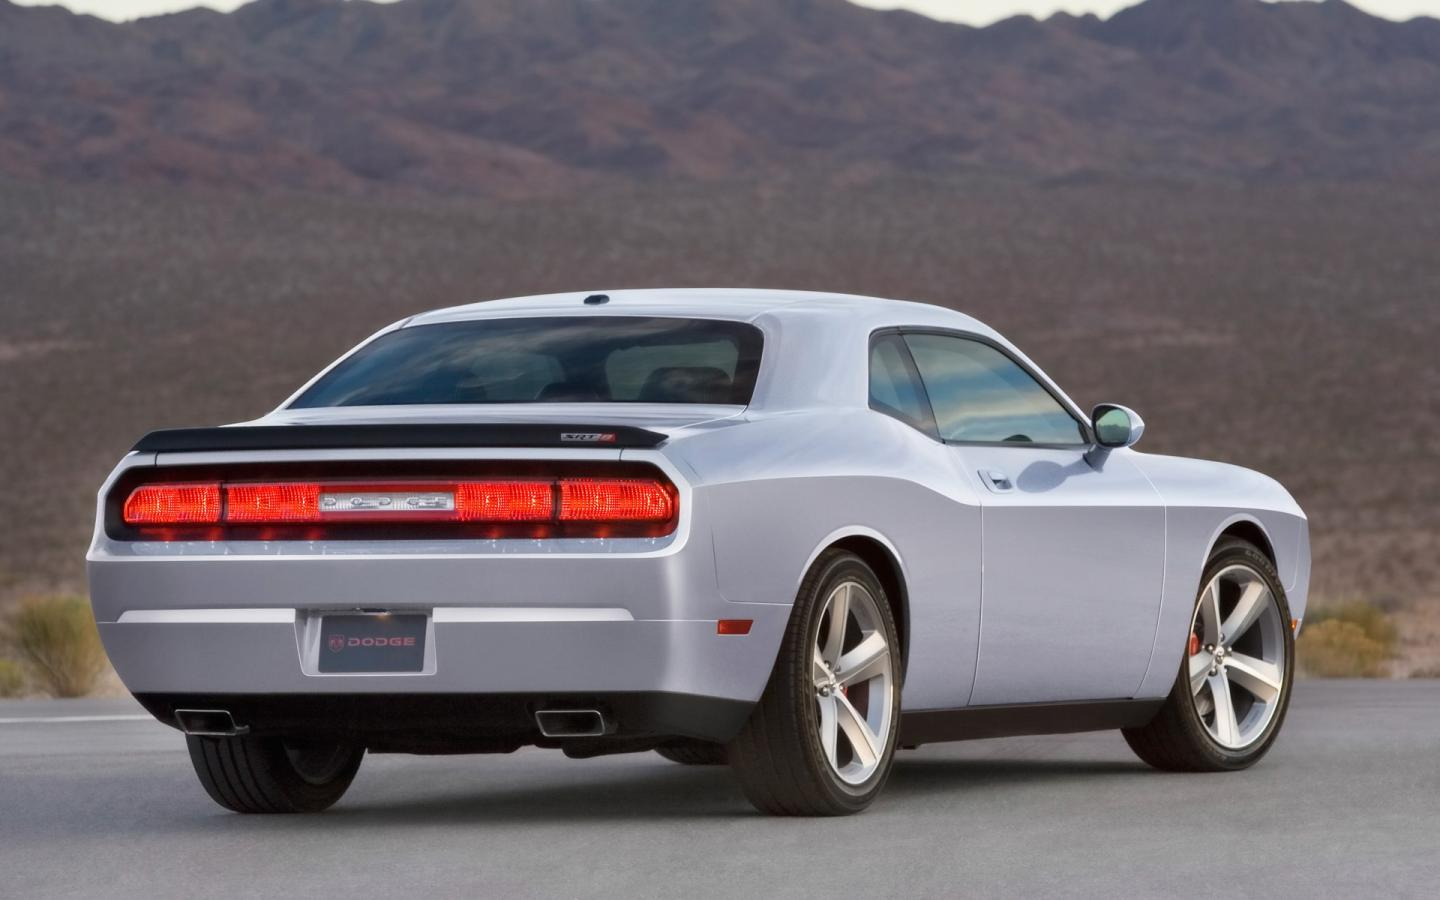 2009 Dodge Challenger Srt8 Rear Angle 1440x900